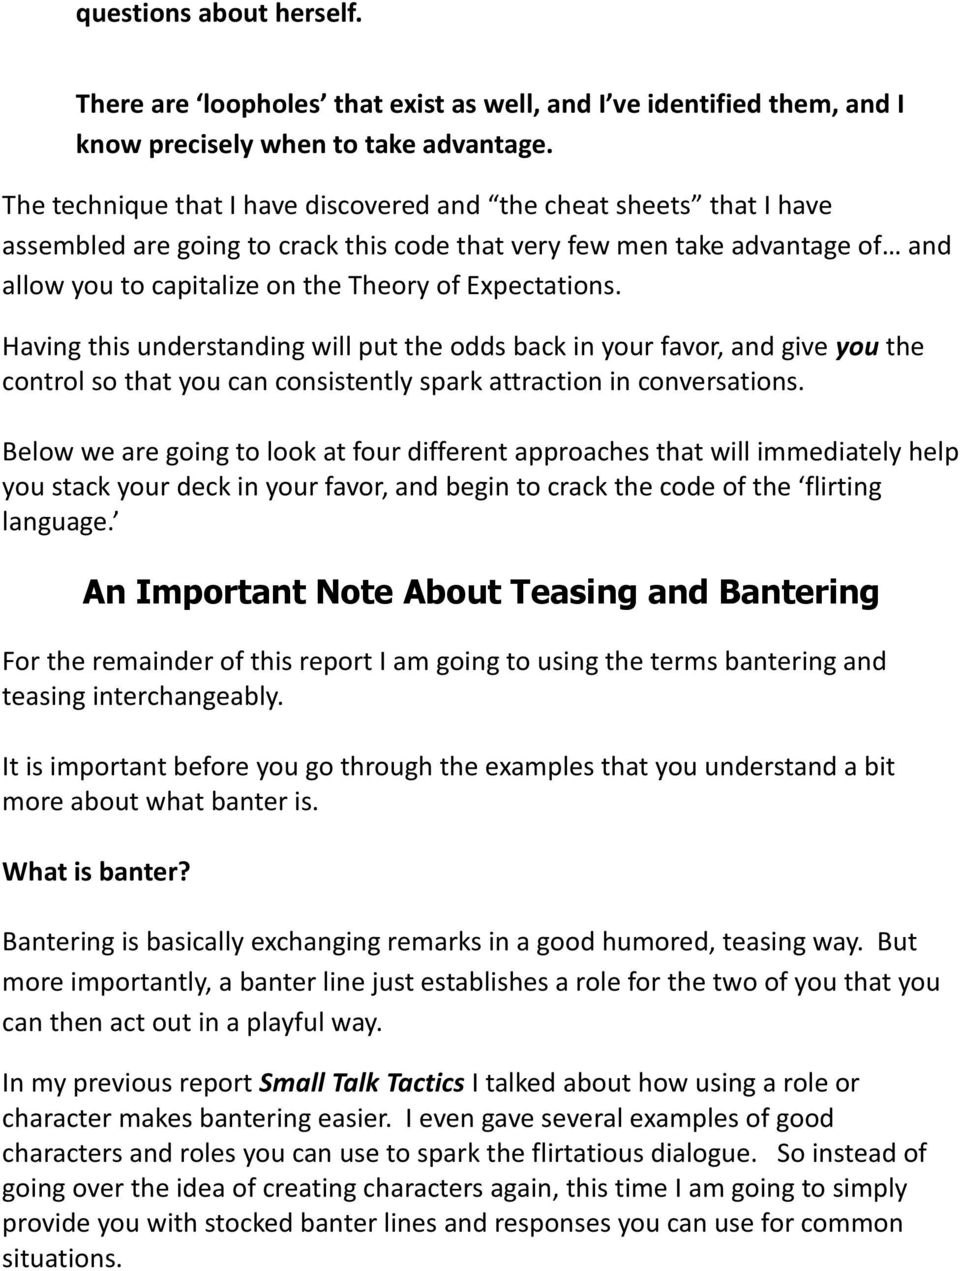 Teasing and banter line cheat sheets pdf having this understanding will put the odds back in your favor and give fandeluxe Image collections